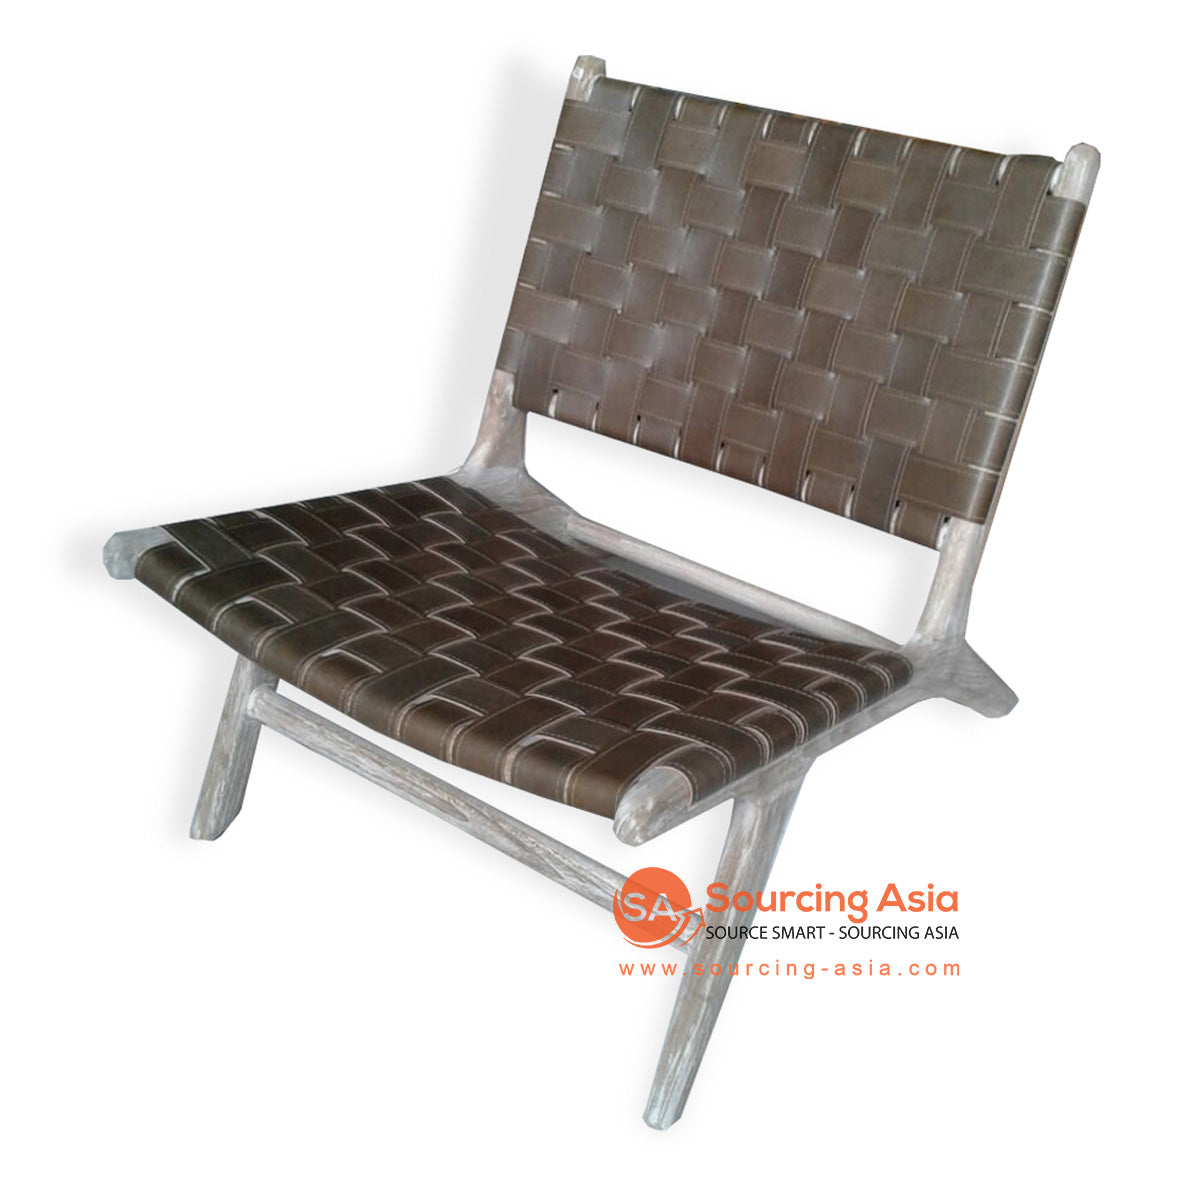 KUSJ002-A5 WOVEN LEATHER LAZY CHAIR